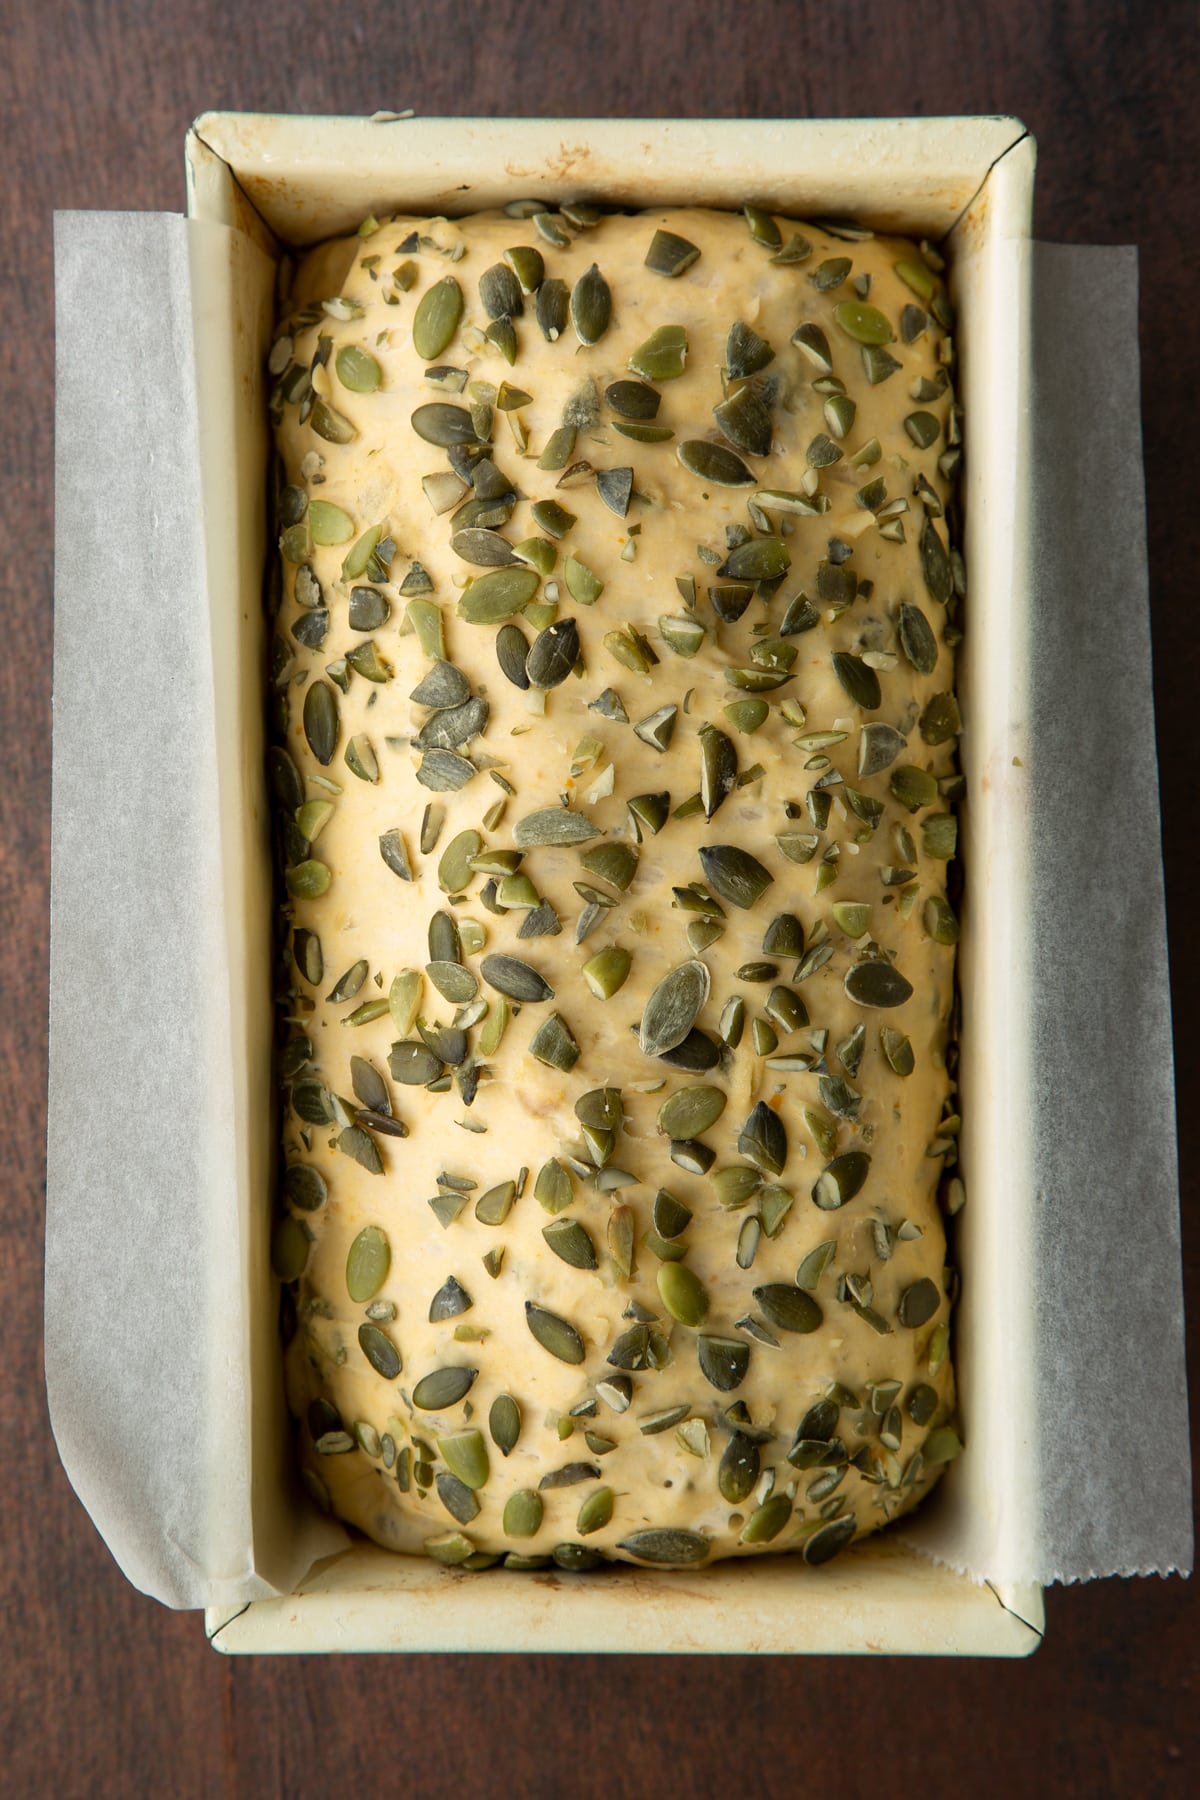 Proved pumpkin seed bread dough covered with pumpkin seeds in a loaf tin lined with baking paper.